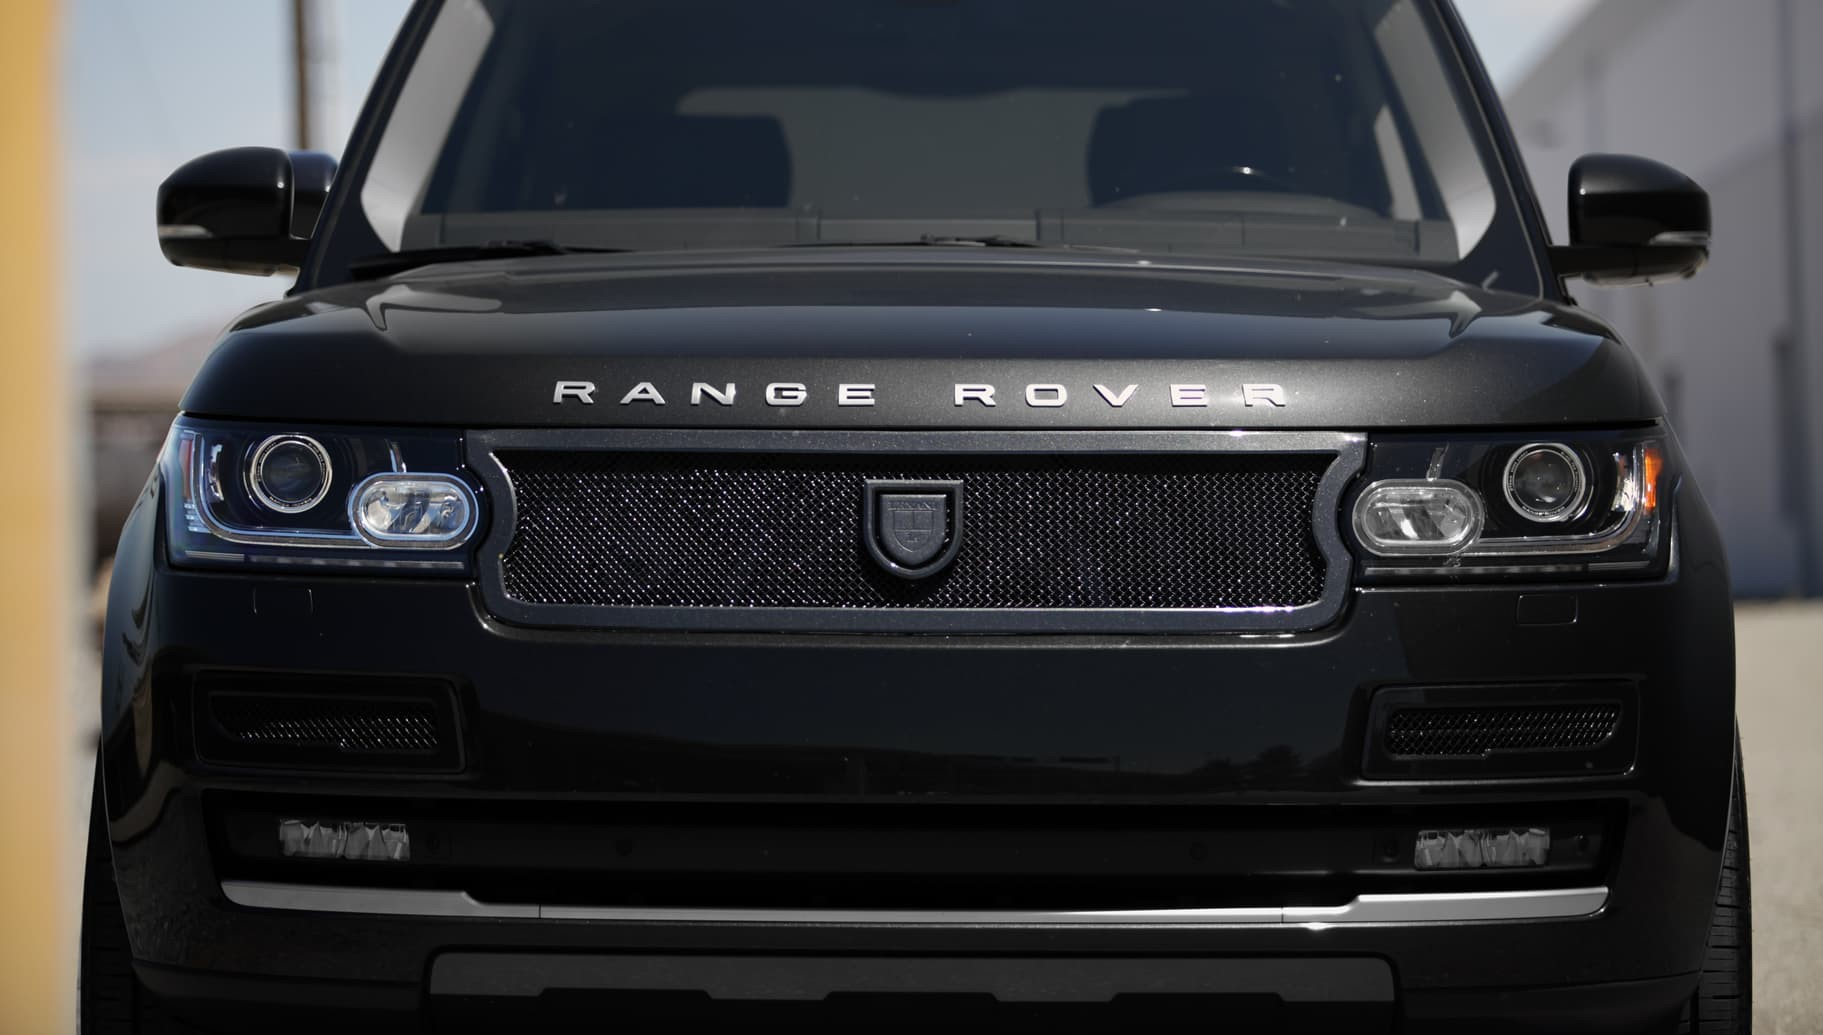 Custom Lf-707 on the Range Rover.